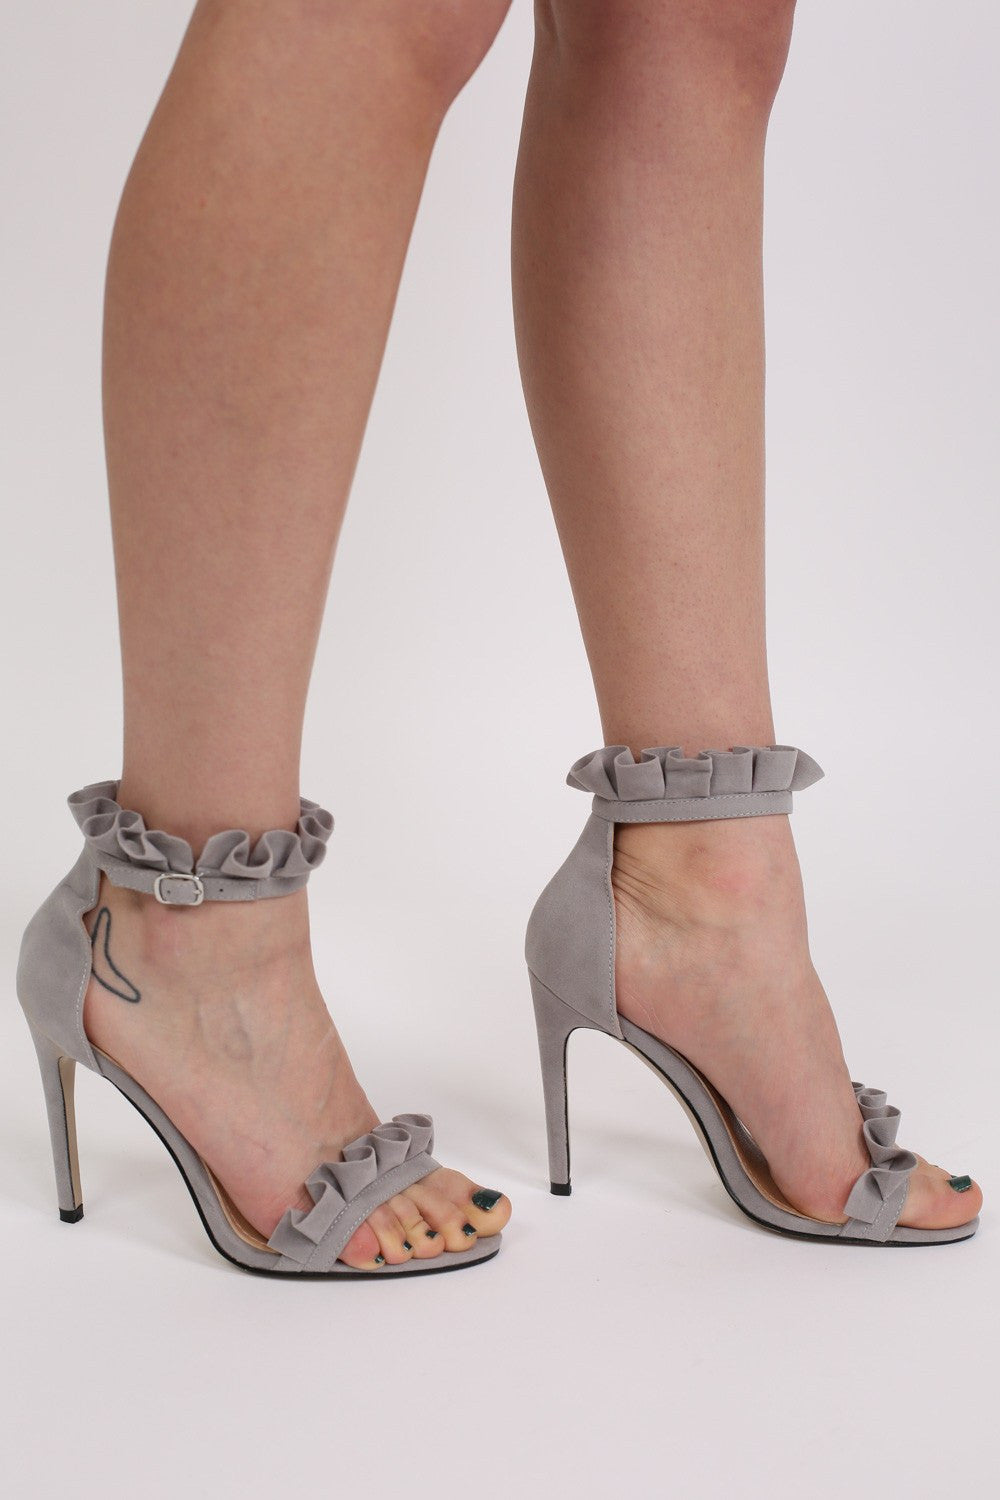 Frill Detail Strappy High Heel Sandals in Light Grey 1